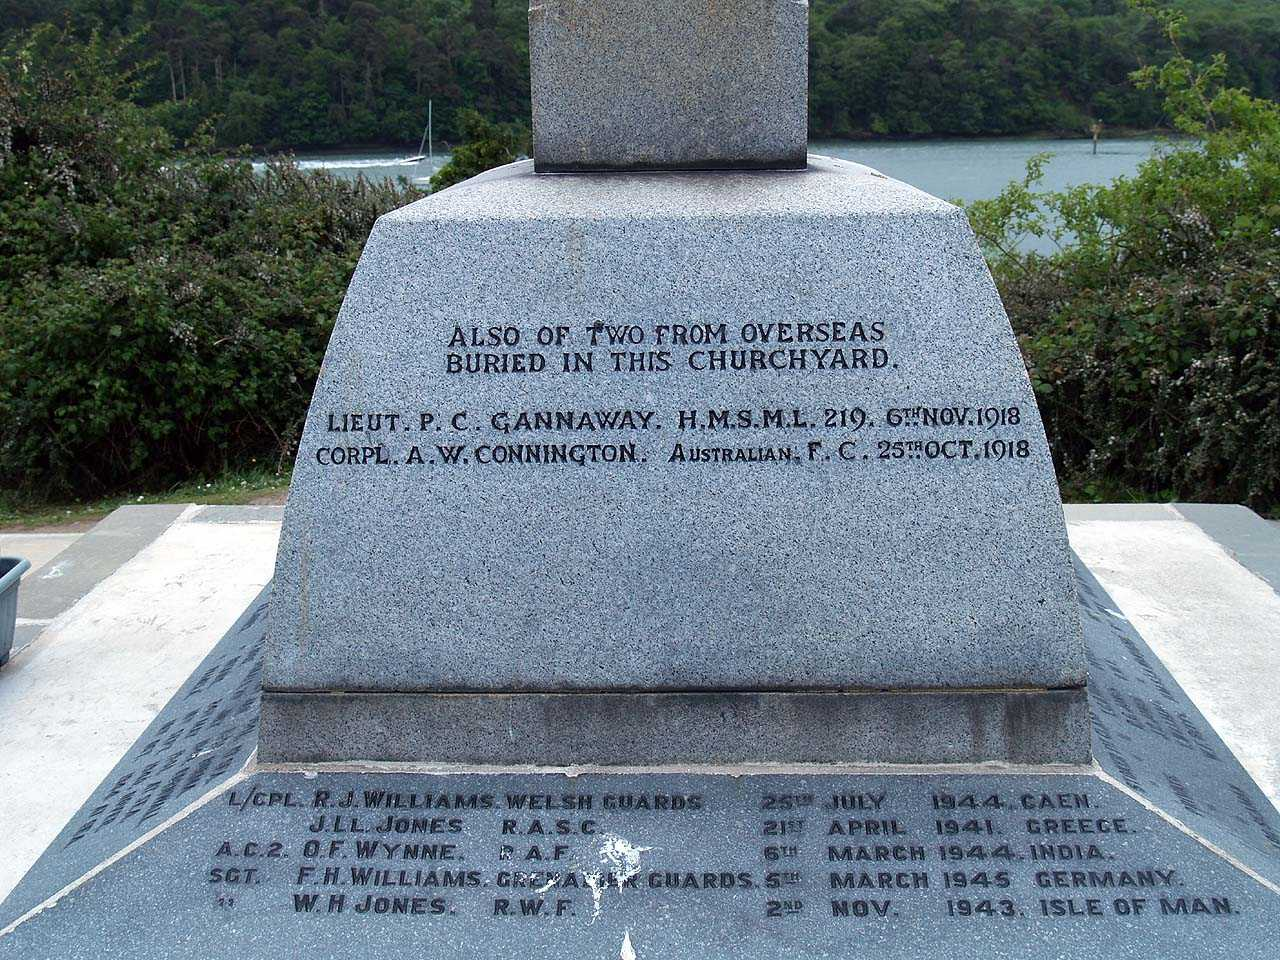 Menai Bridge, War Memorials - Two from overseas and WWII Casualties